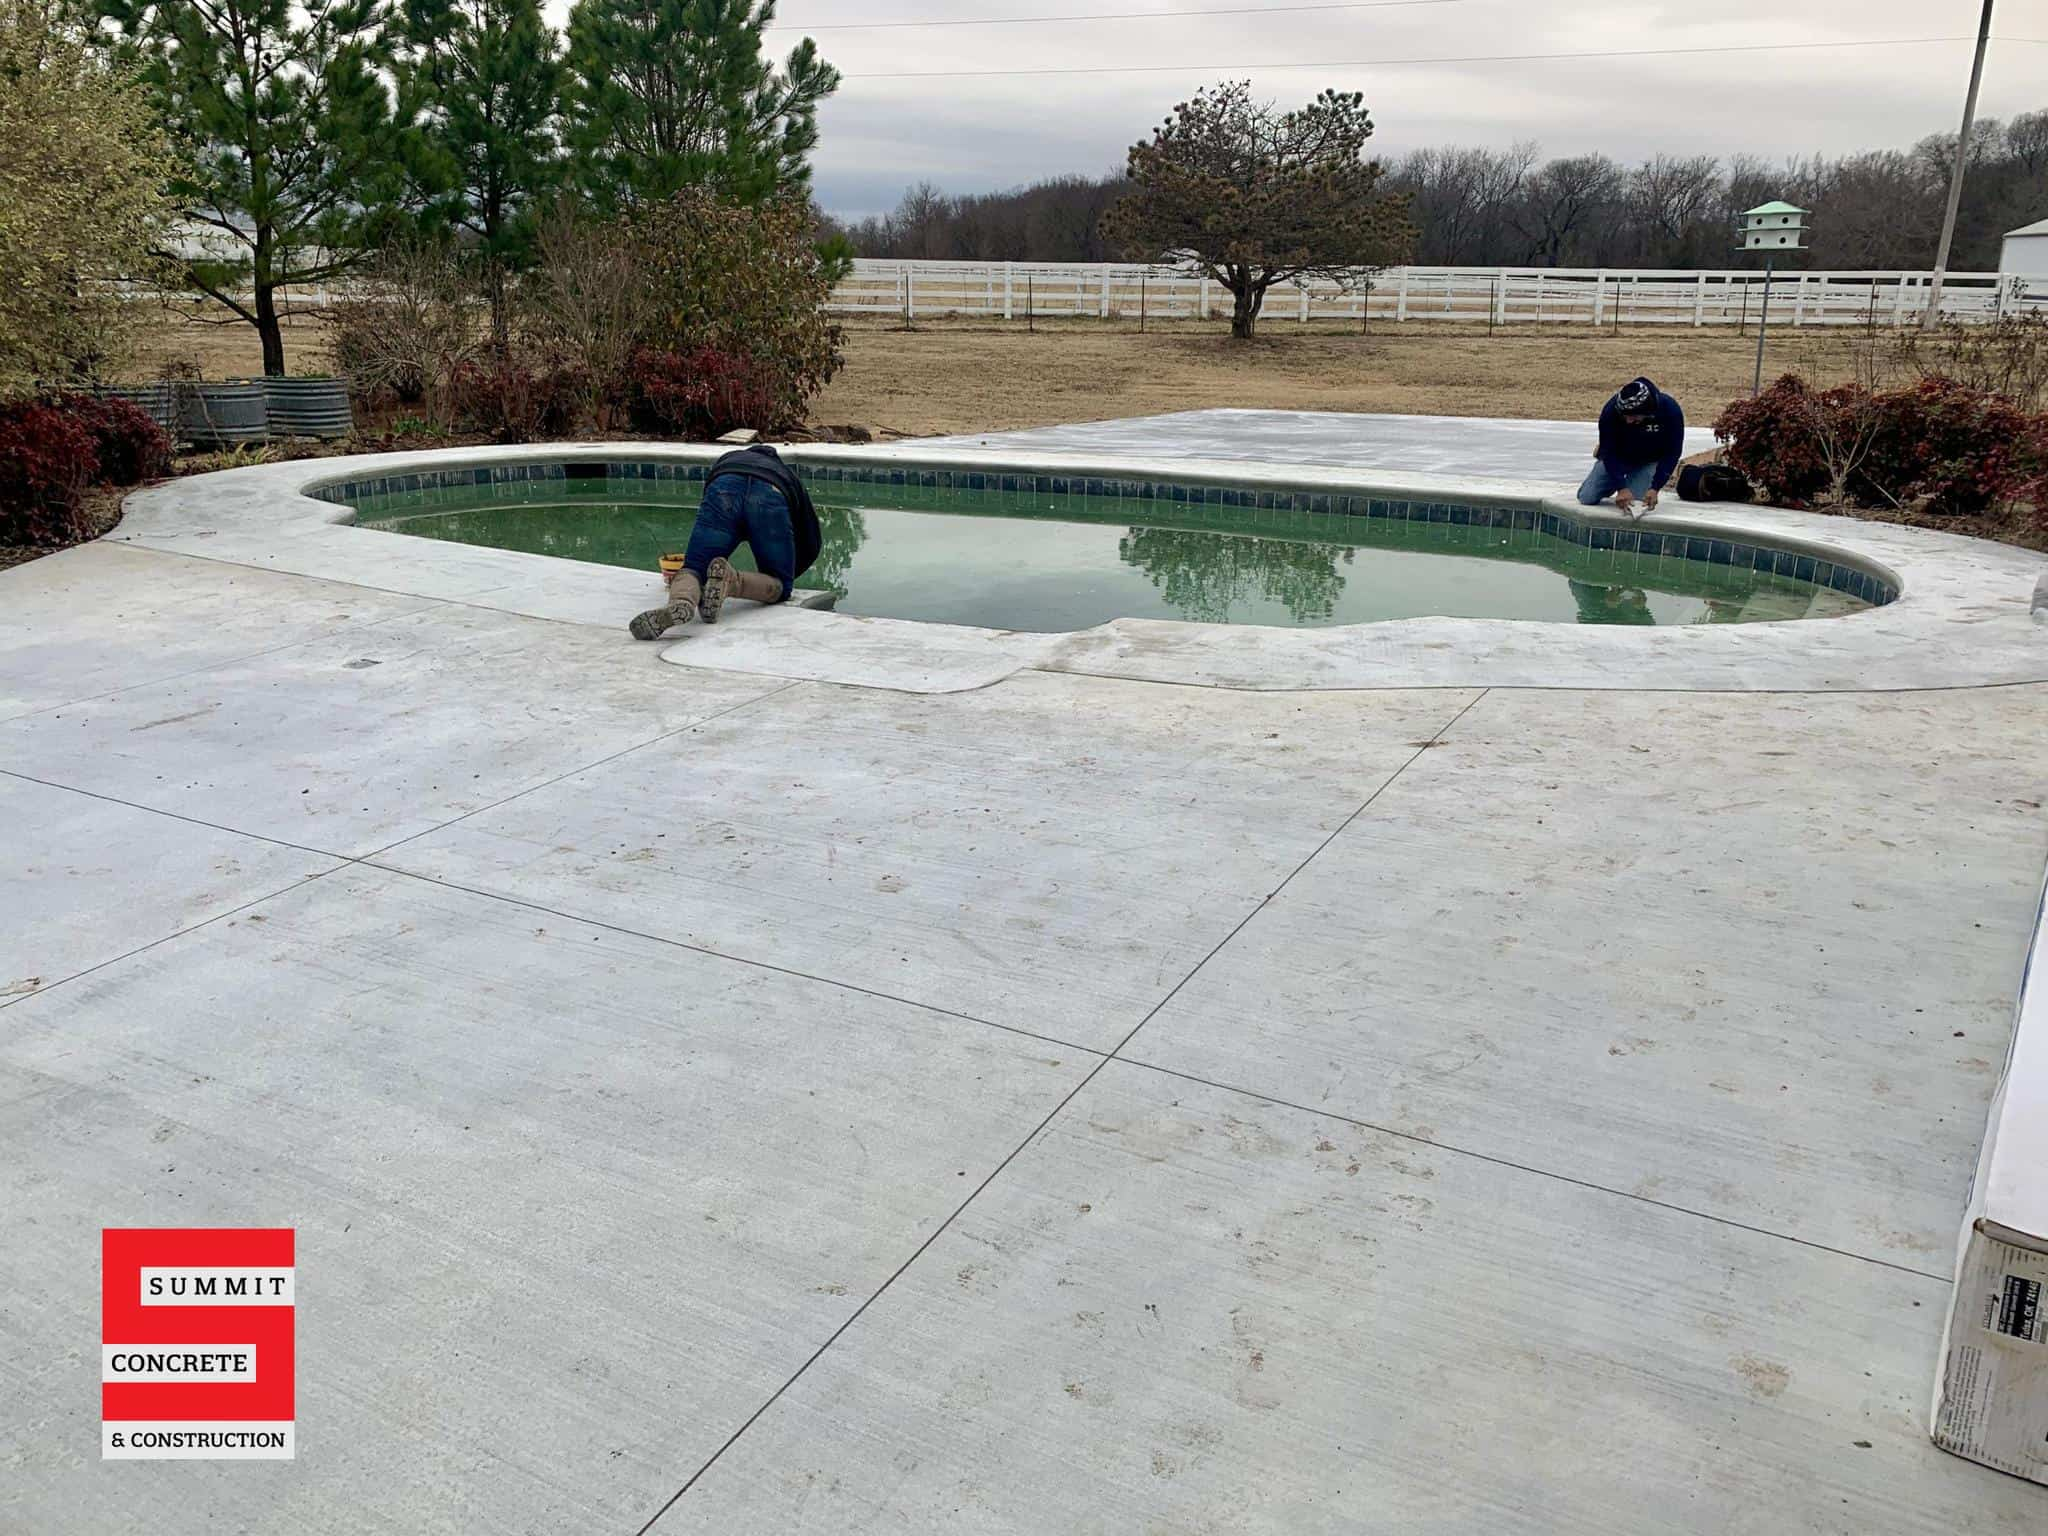 2021 01 06 Oklahoma concrete driveway sidewalk patio pool coping IMG 7819 scaled